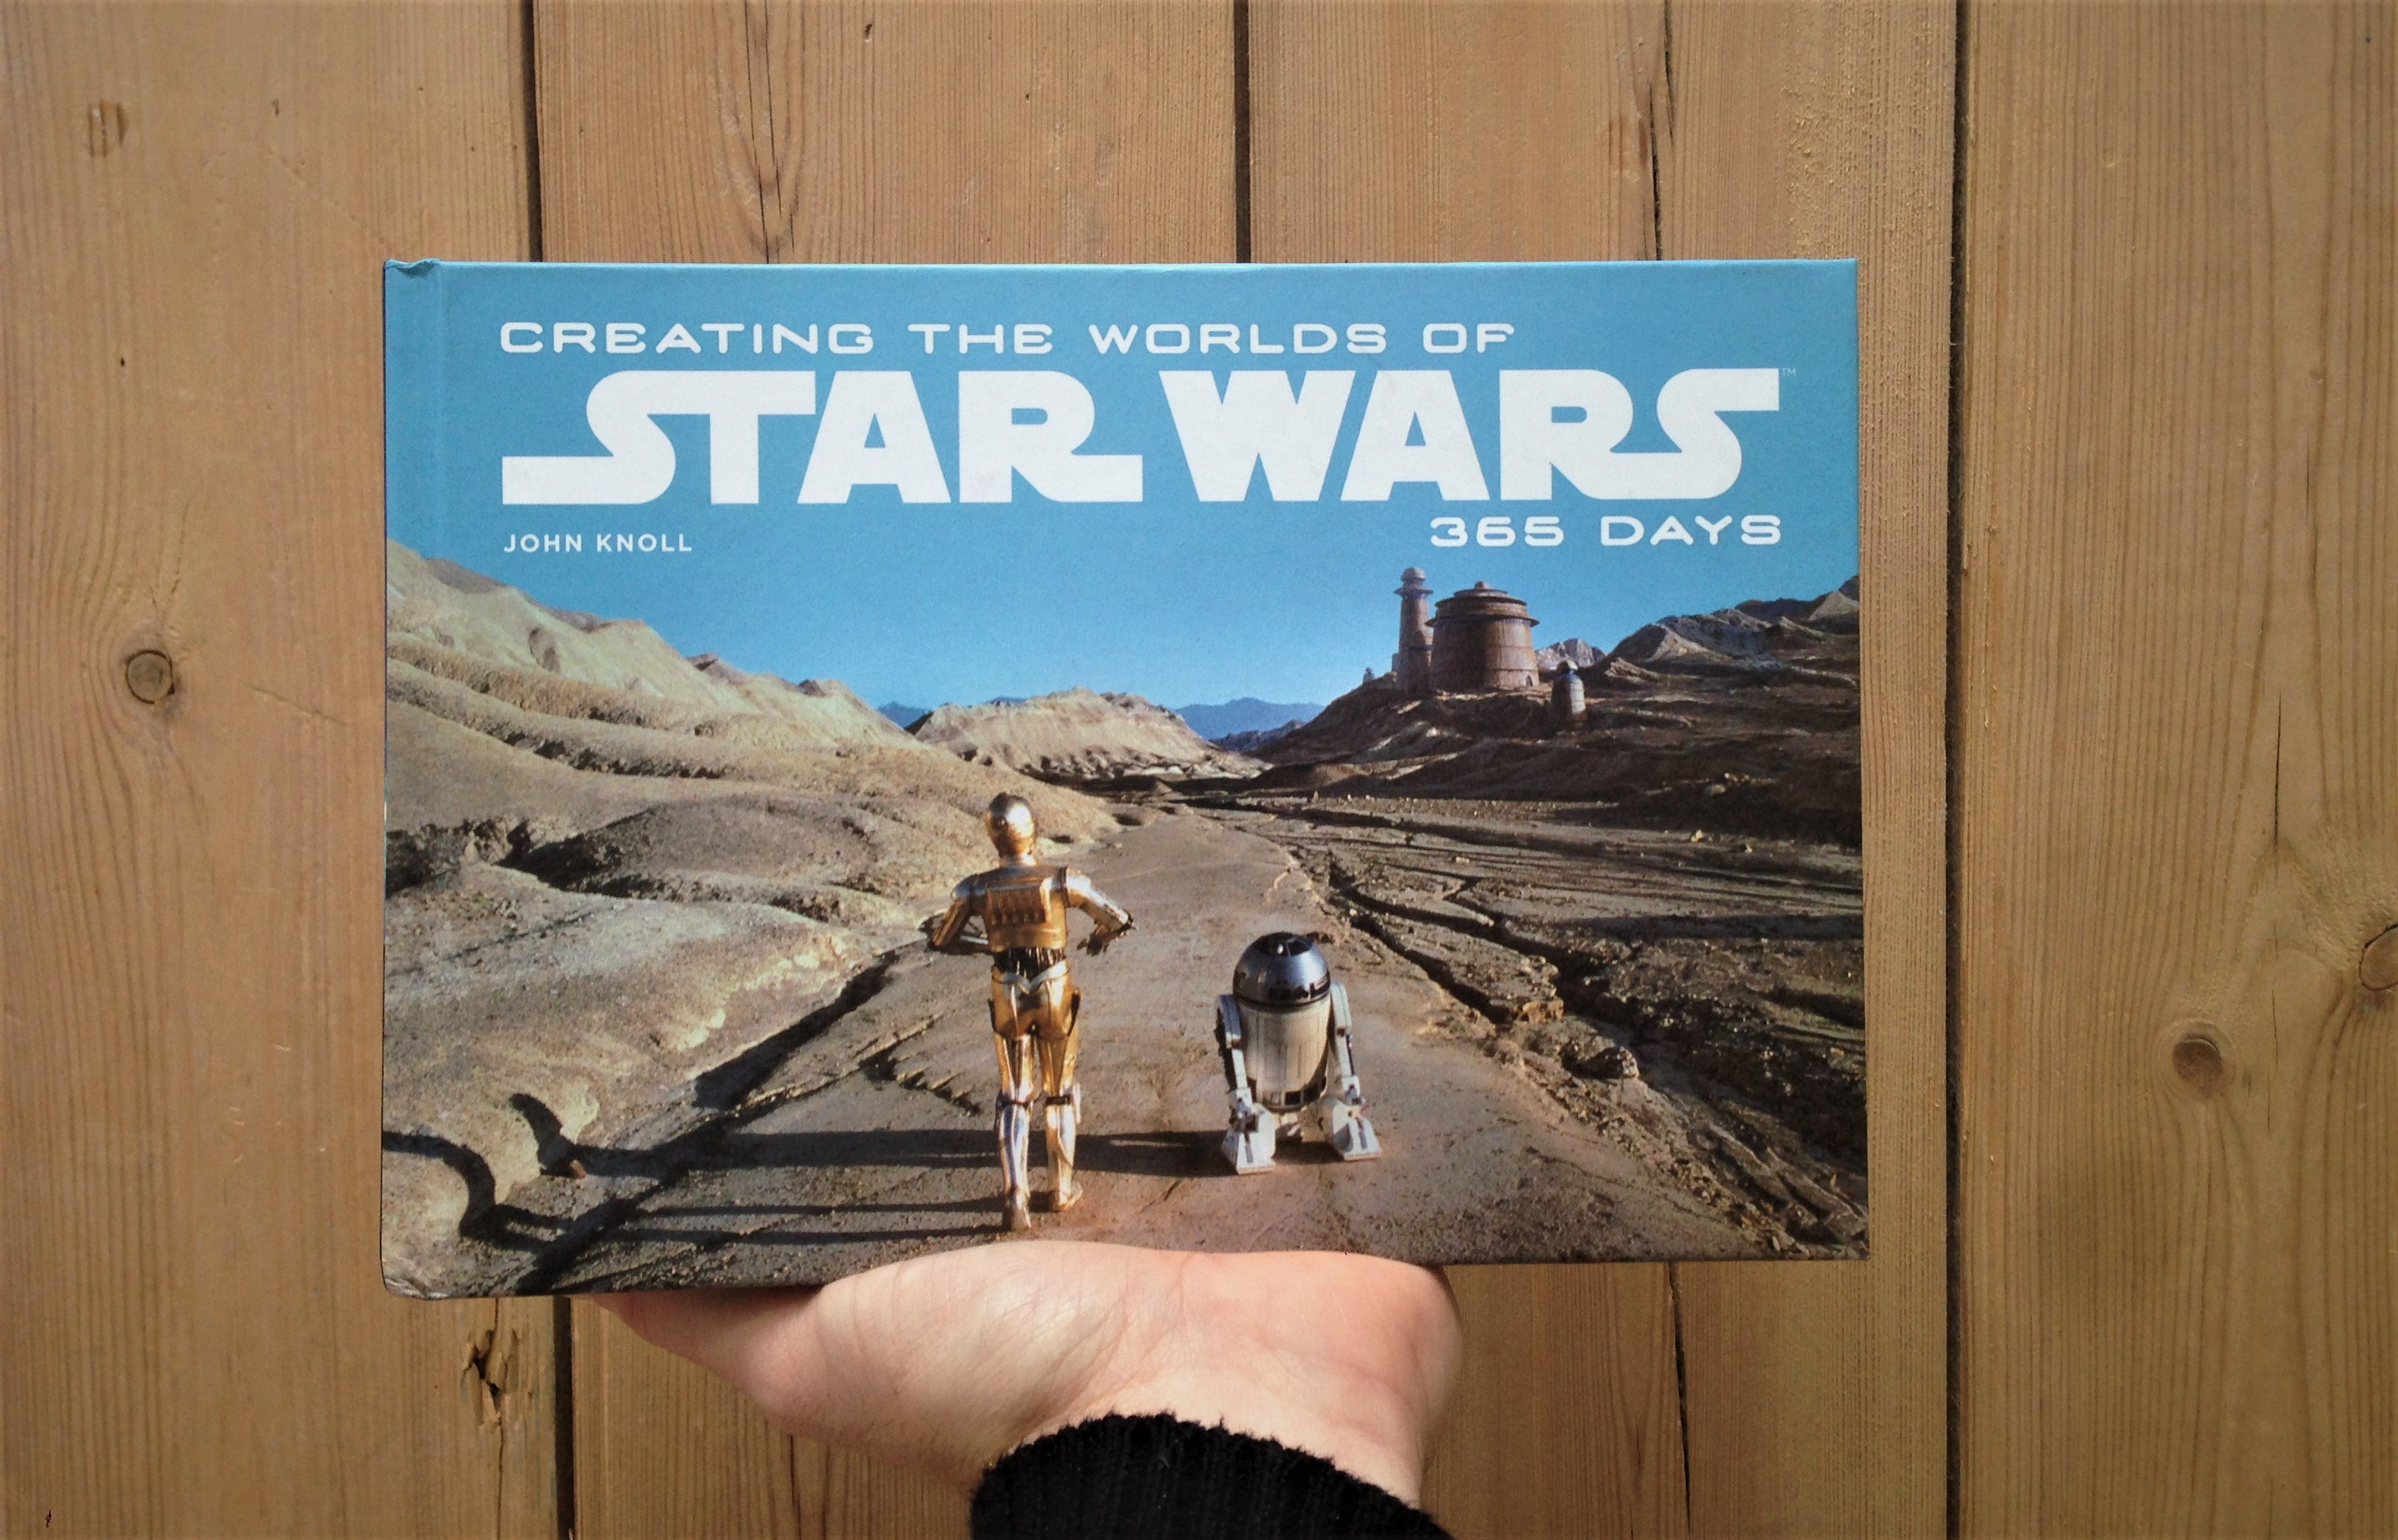 Anmeldelse -Creating the Worlds of Star Wars in 365 Days - Star Wars - Bog - John Knoll - Plusbog.dk - Film - Fiktion & Kultur (2)